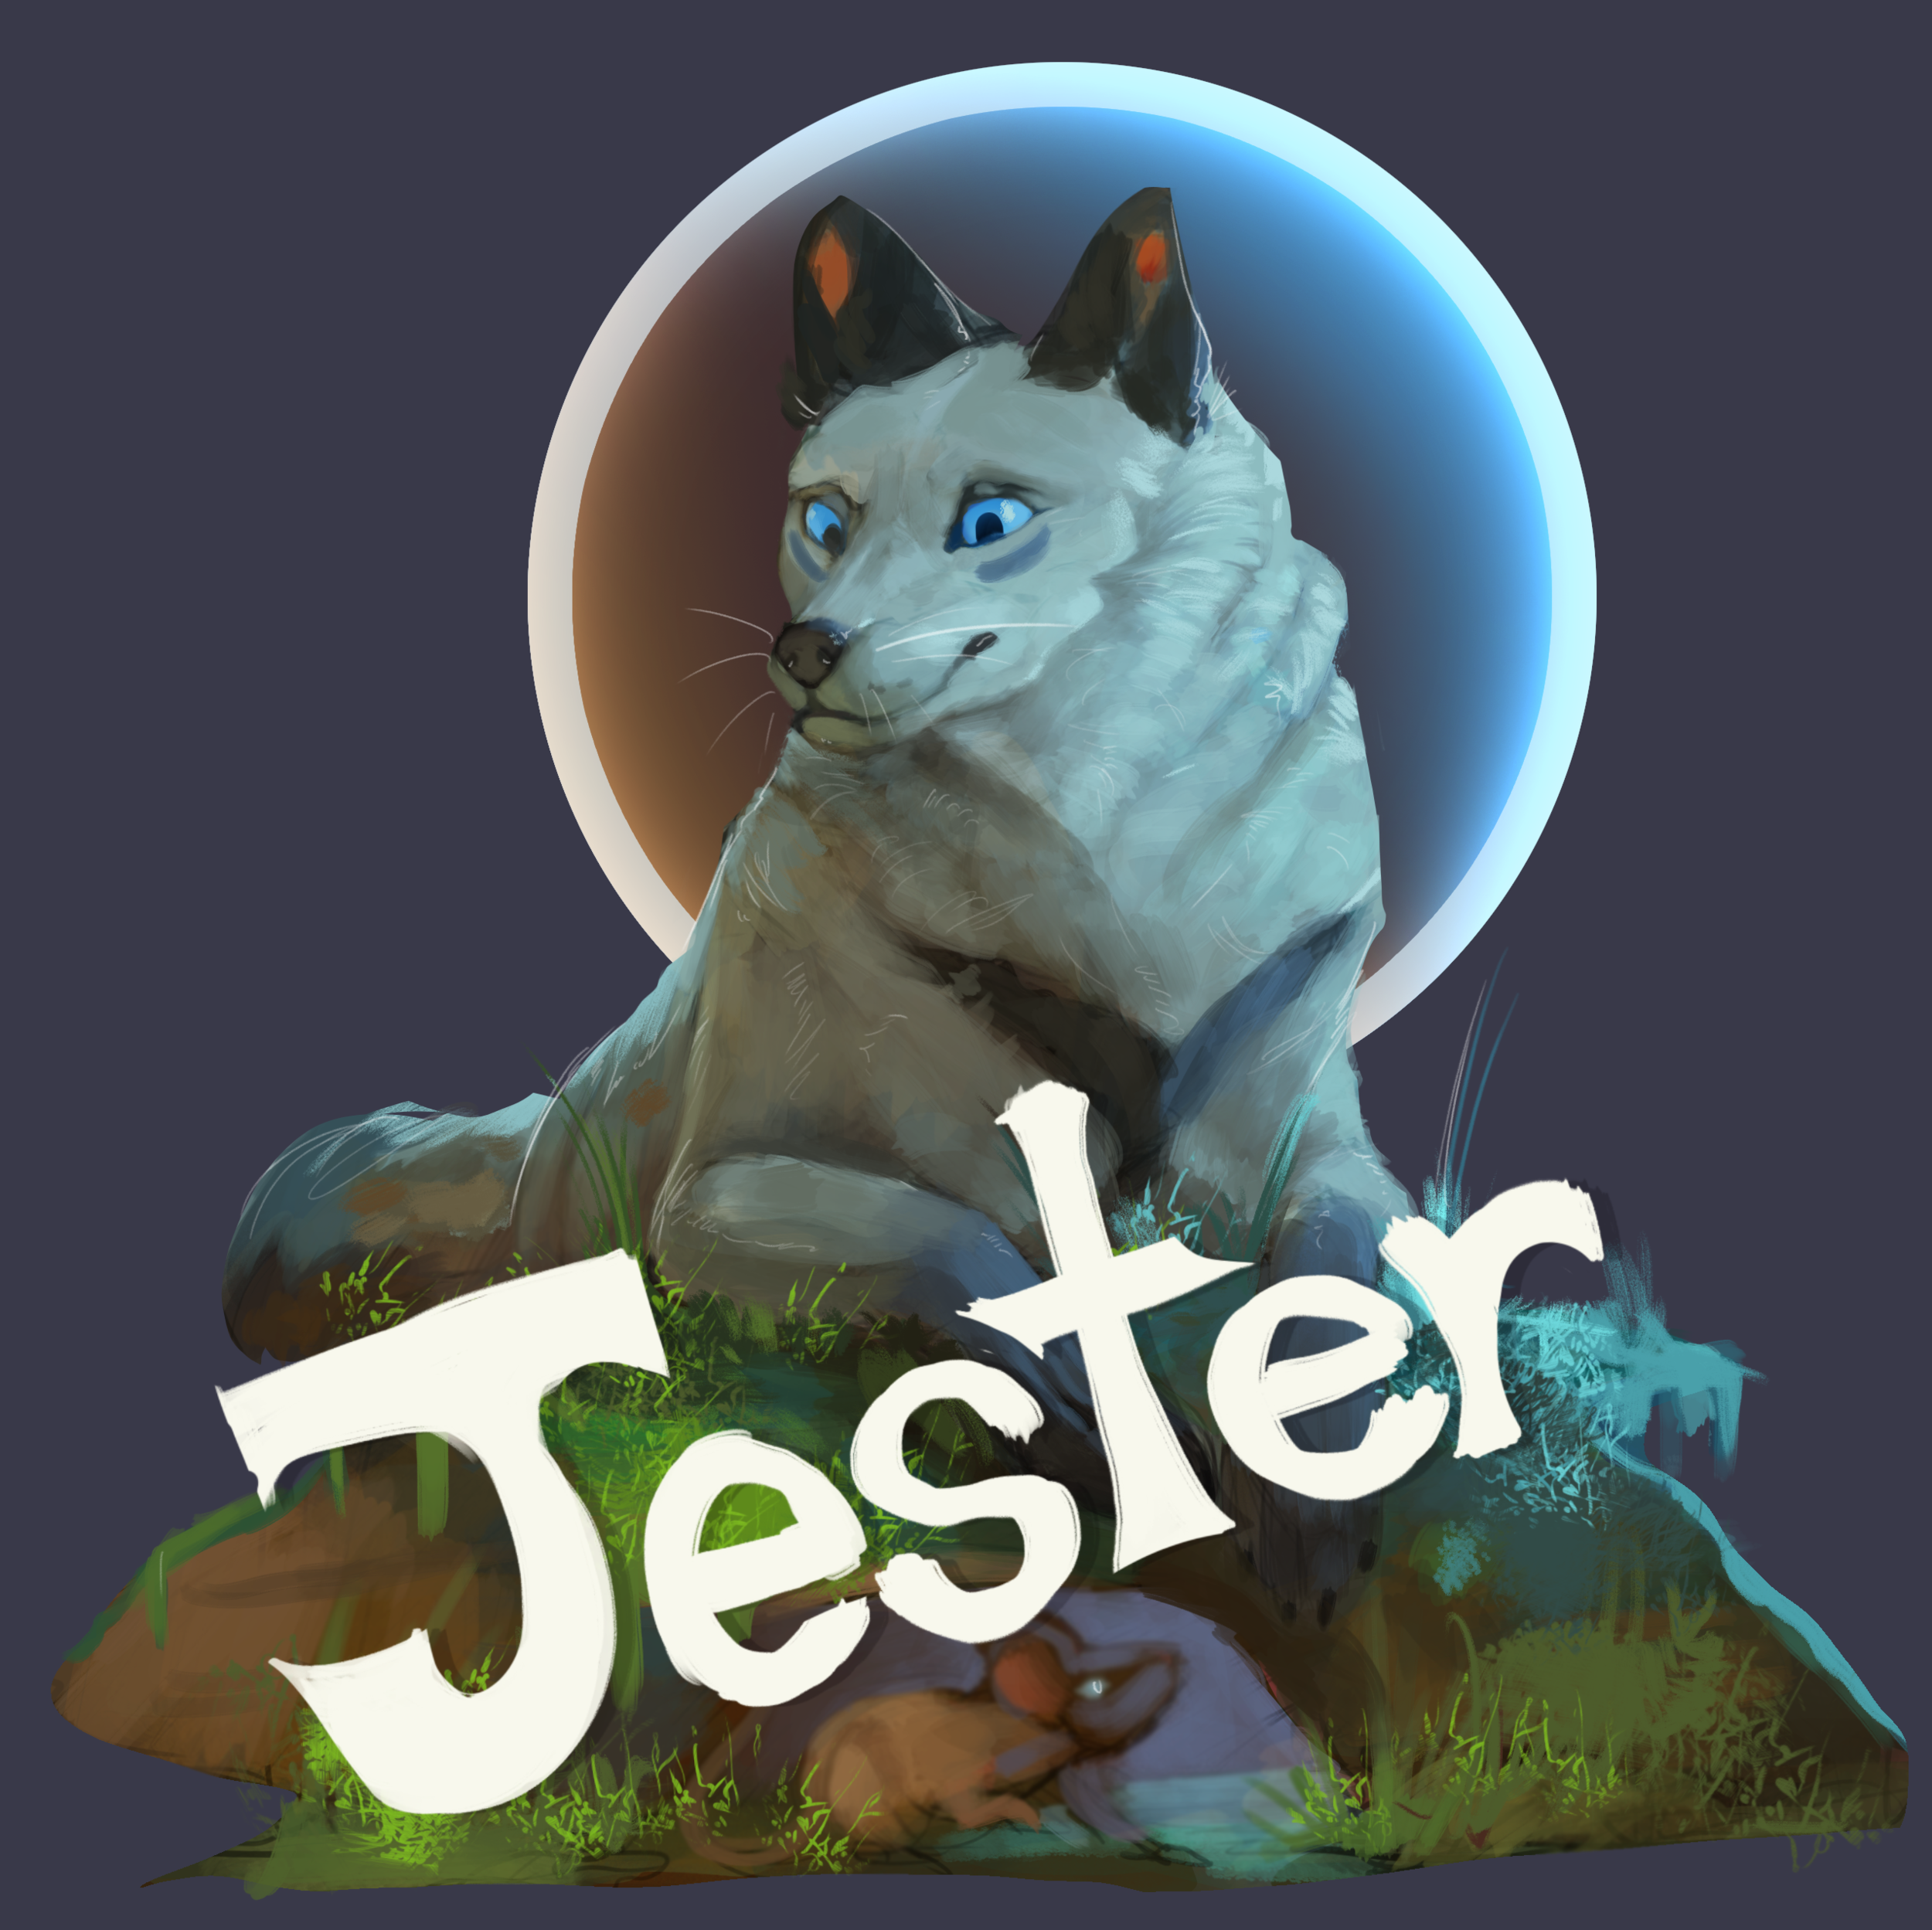 jesterbadge.png